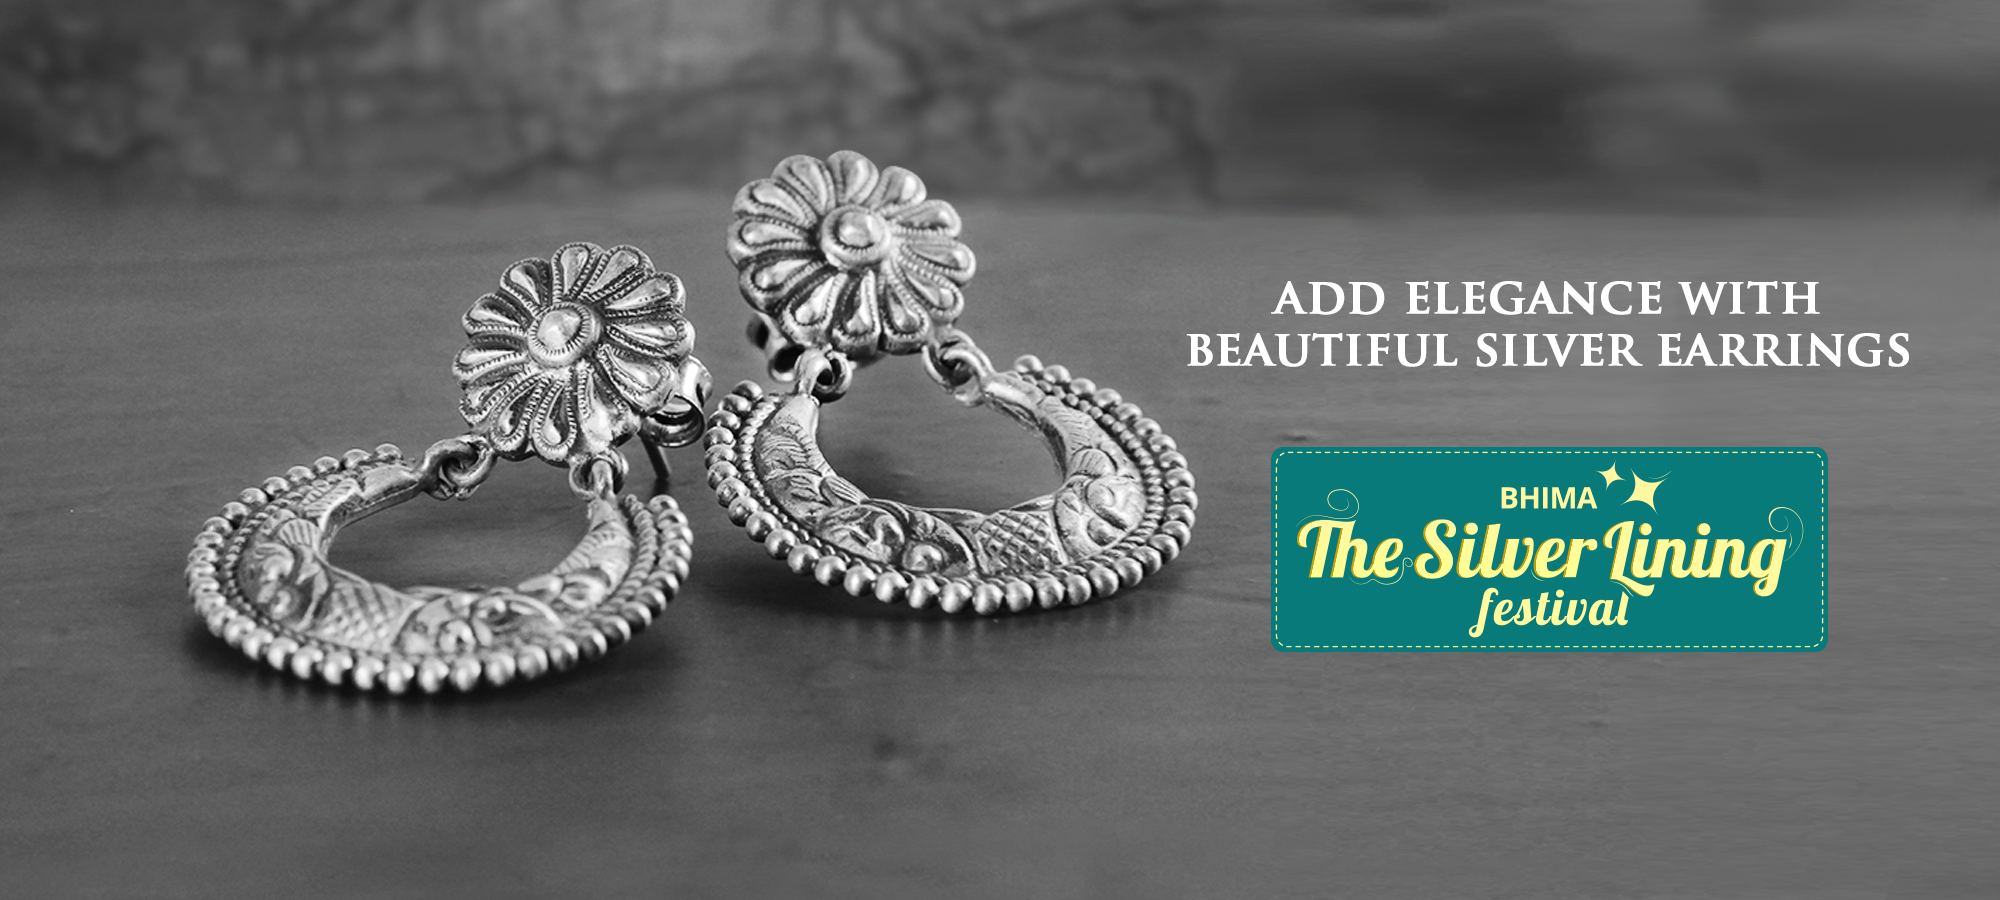 finish designs silver latest jewelsmart jewellery oxidised jhumka earrings buy online